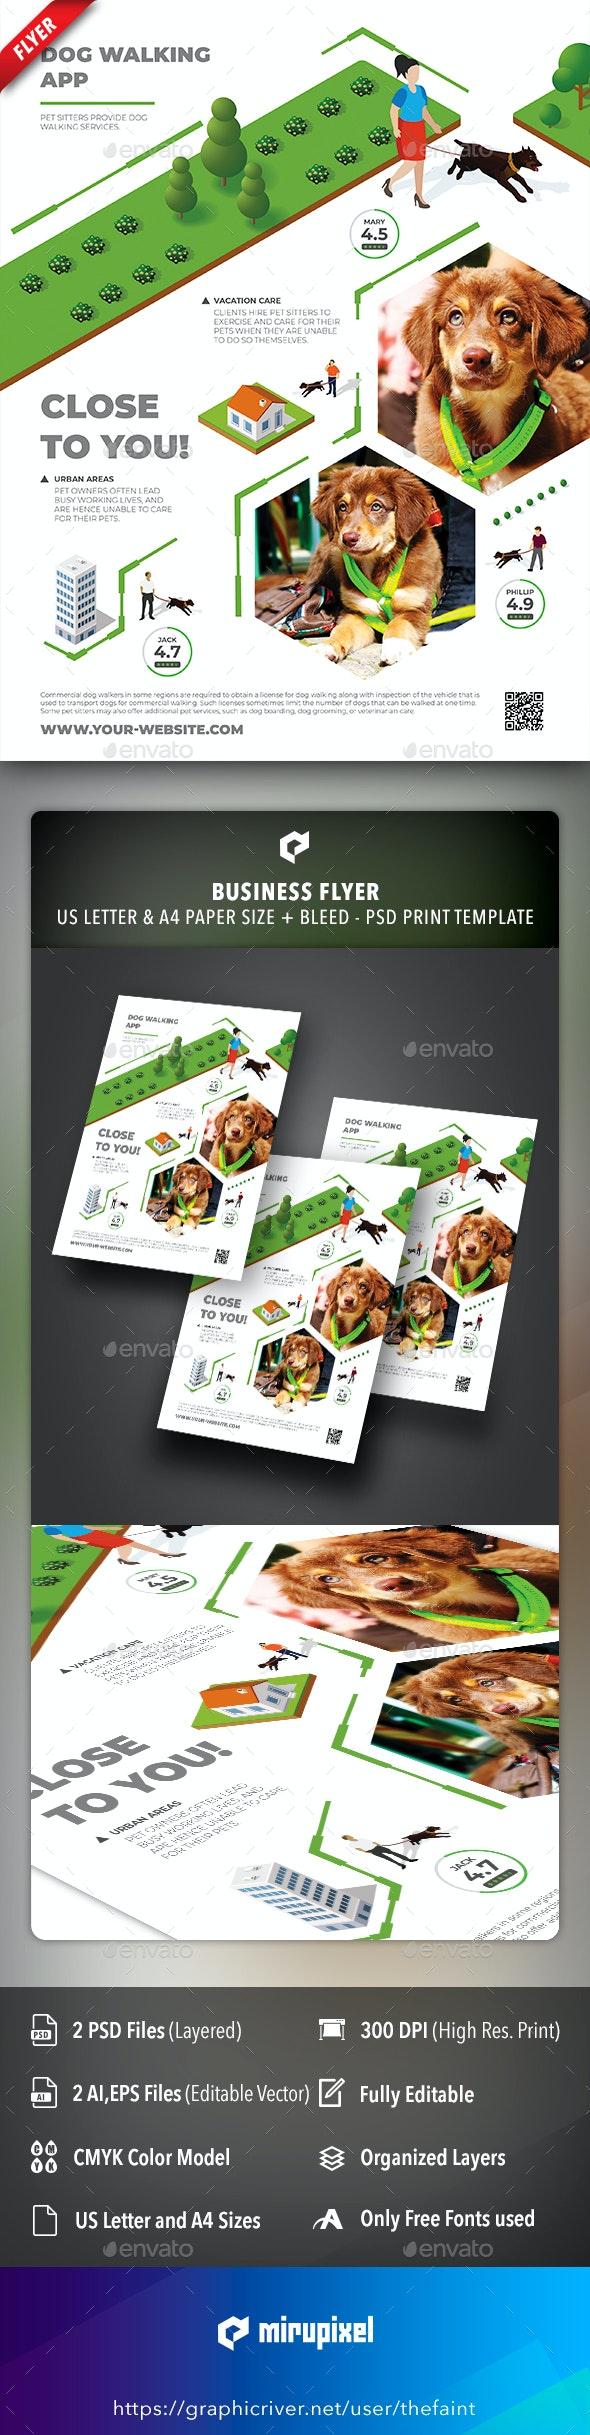 Dog Walking App Business Flyer - Commerce Flyers